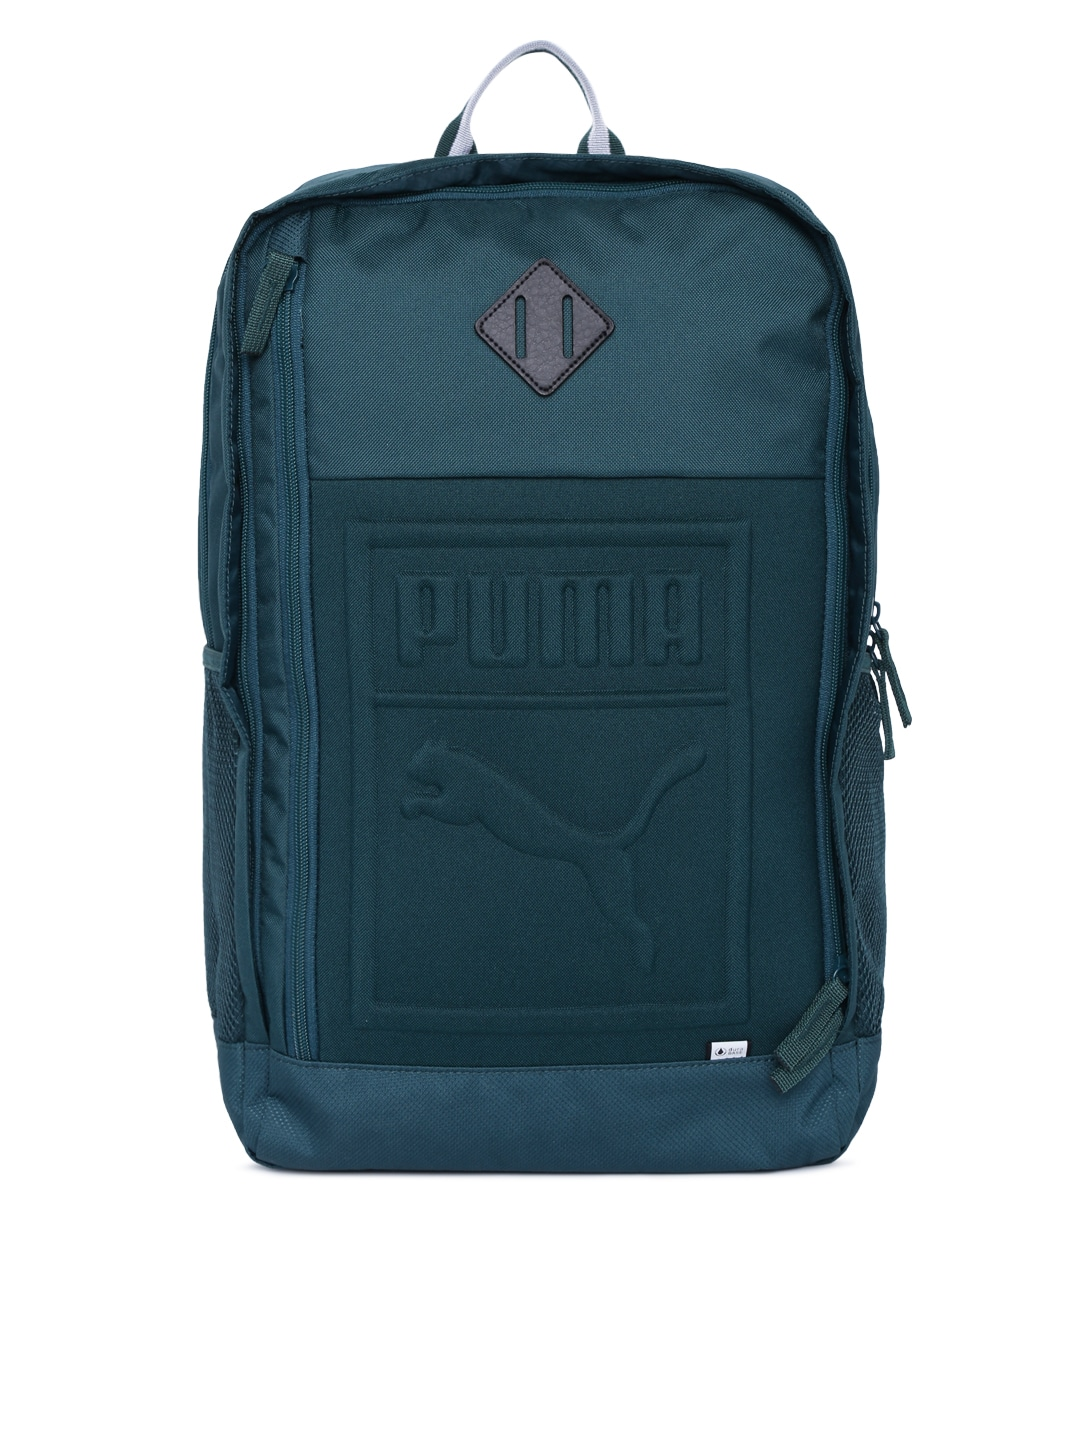 a0810c0b45 Laptop Bag - Buy Laptop Bags   Backpack Online in India